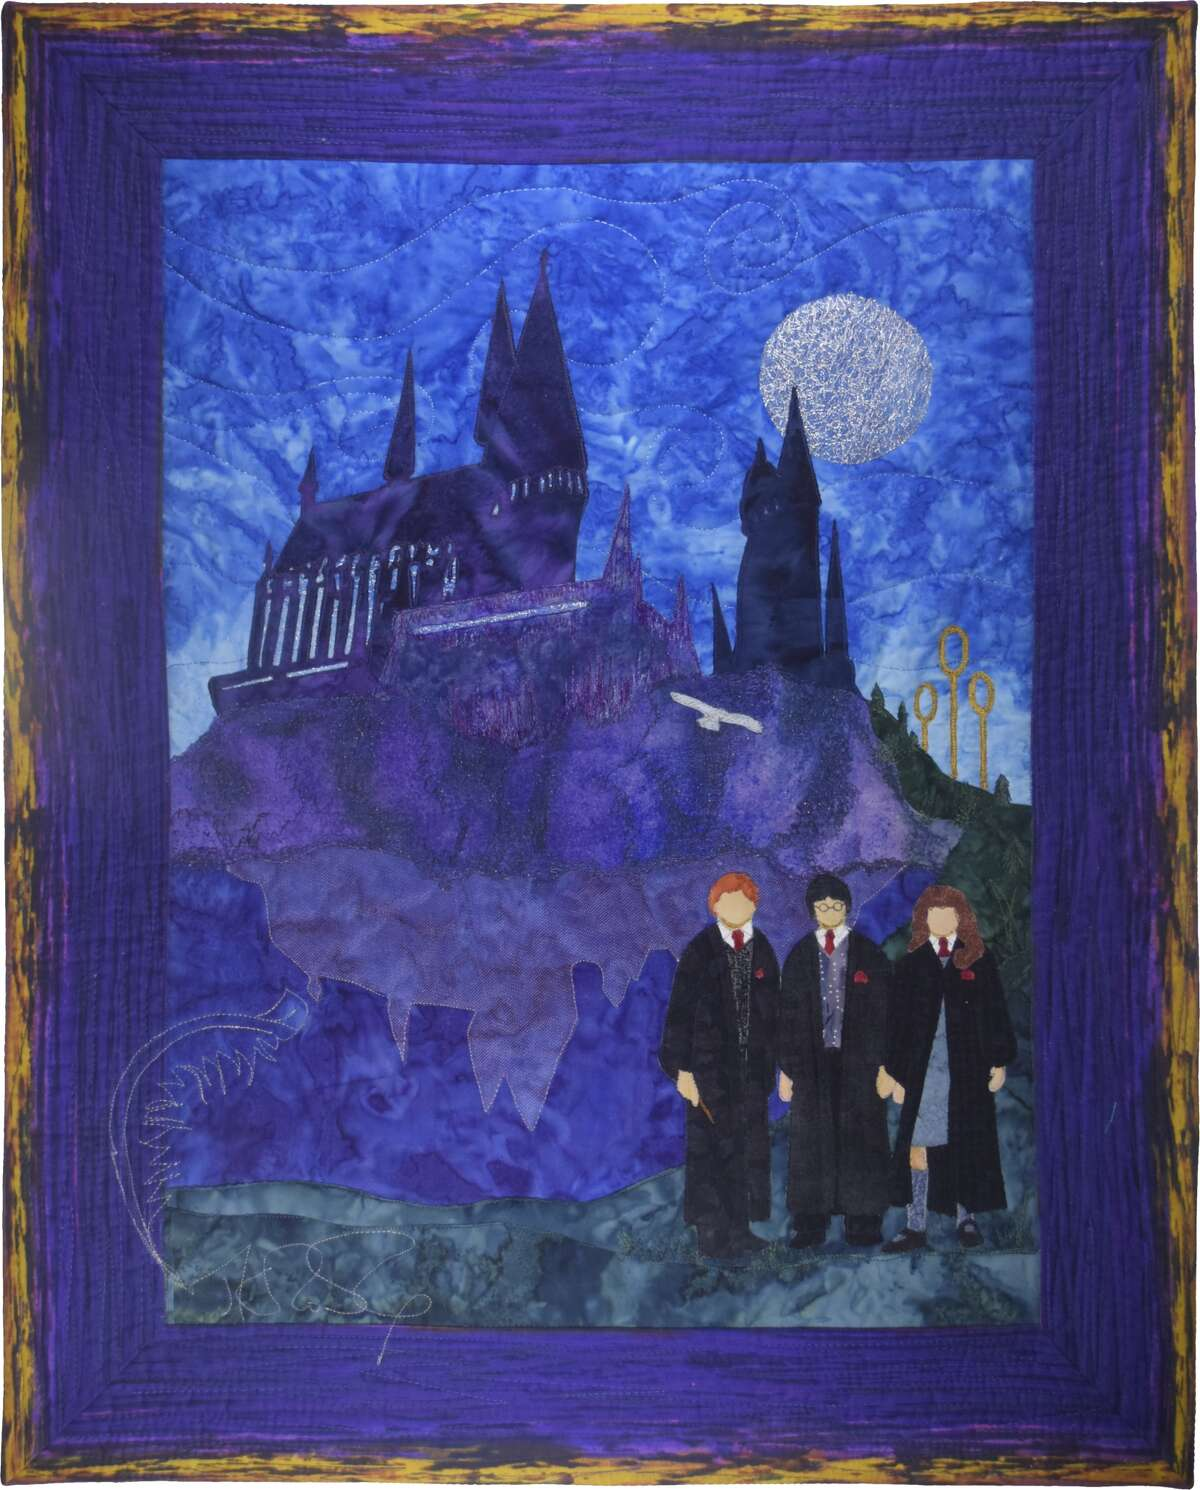 """""""The Brilliant Creation of JK Rowling,"""" by Rosanne Williamson honoring JK Rowling"""